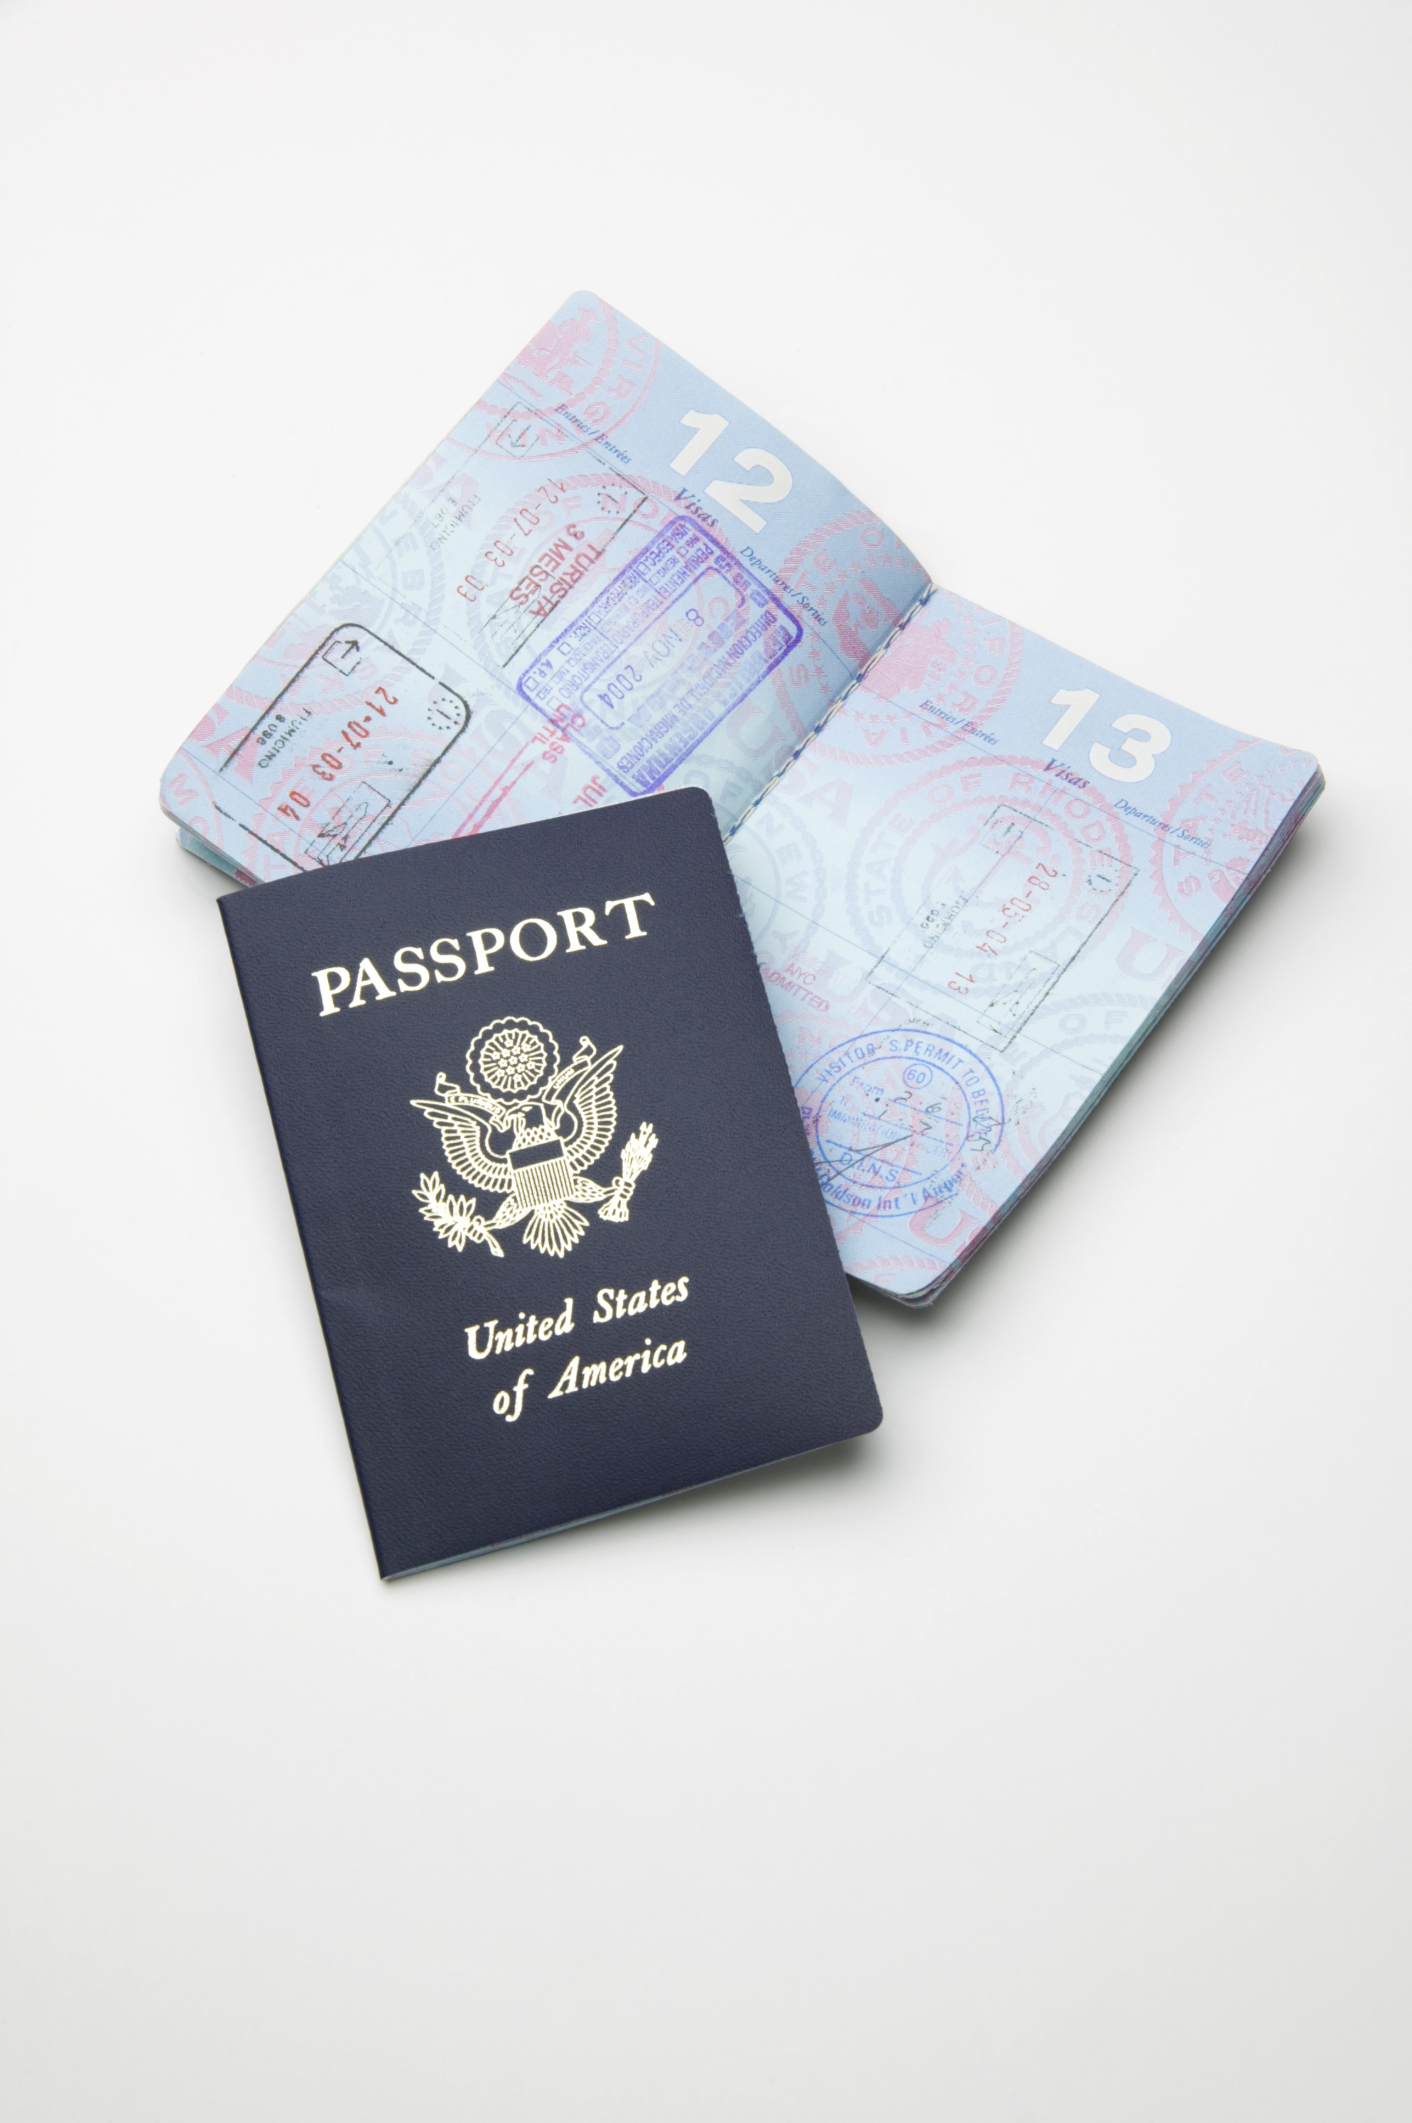 Reasons Why A Passport Would Be Denied Usa Today